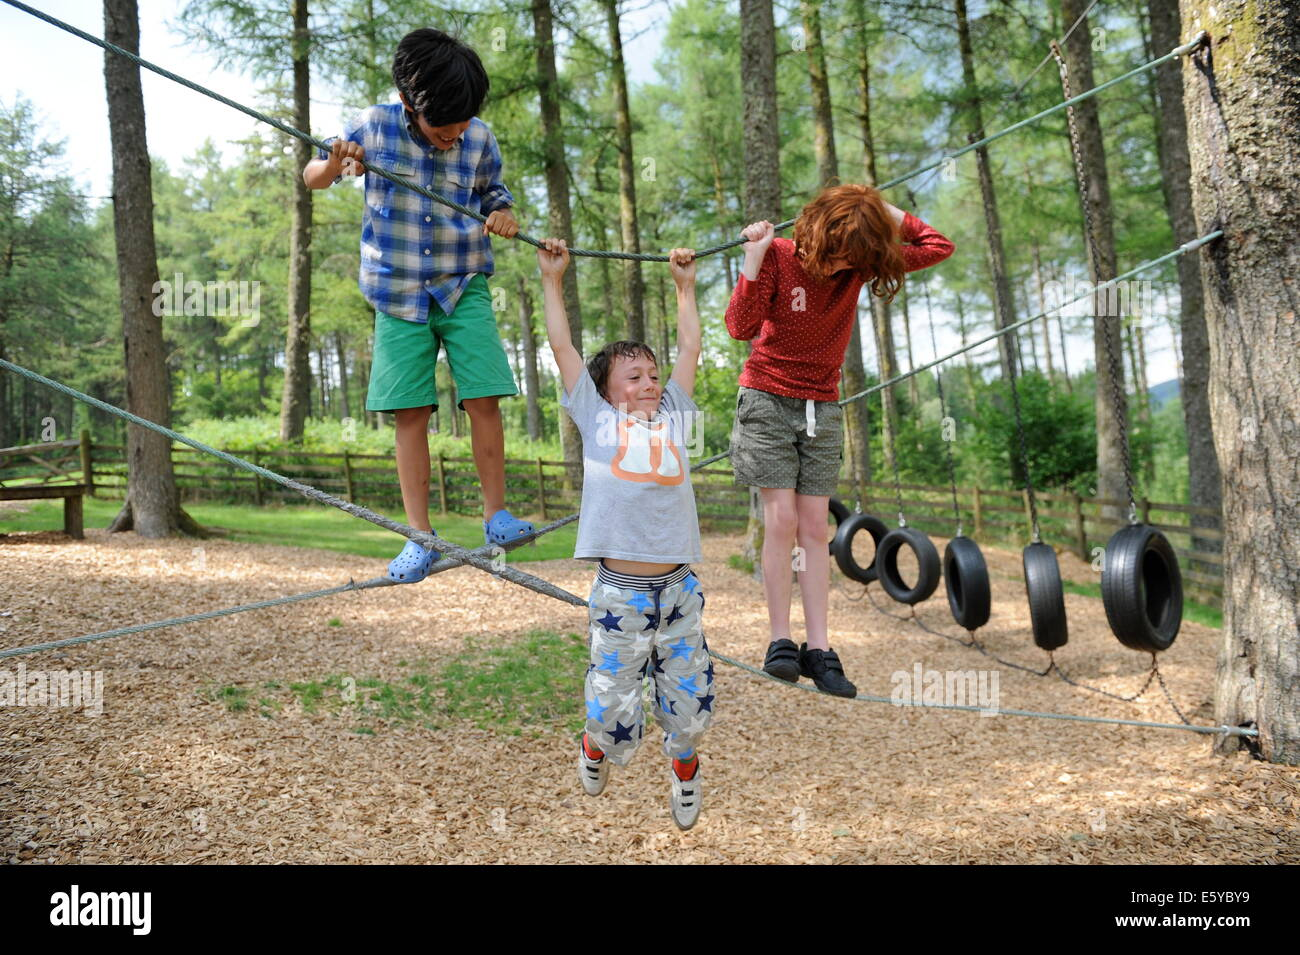 School friends swinging in the adventure park at Garwnant Forest, Powys near Merthyr Tidfil, wales Stock Photo